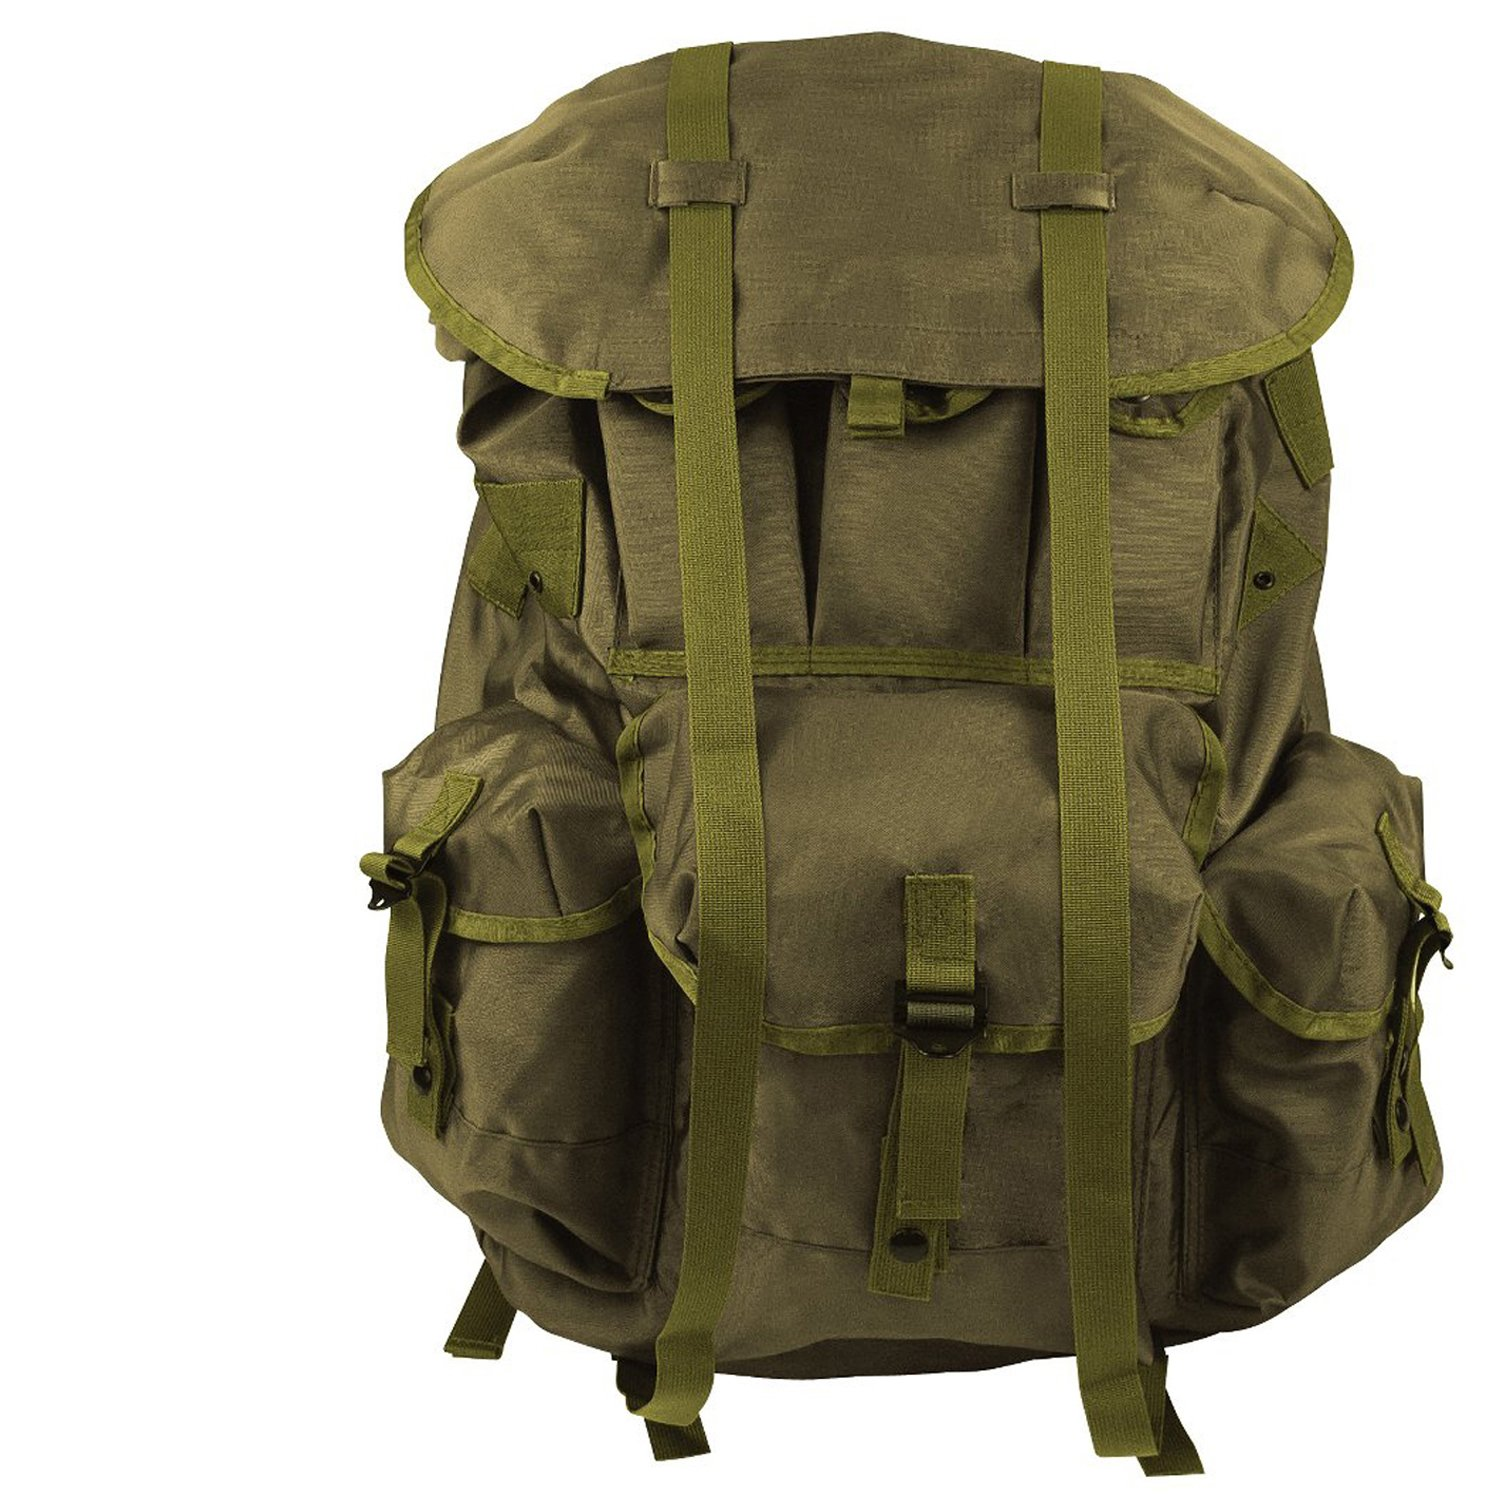 Rothco 2251 G.I Olive Drab Type Alice Pack without Frame